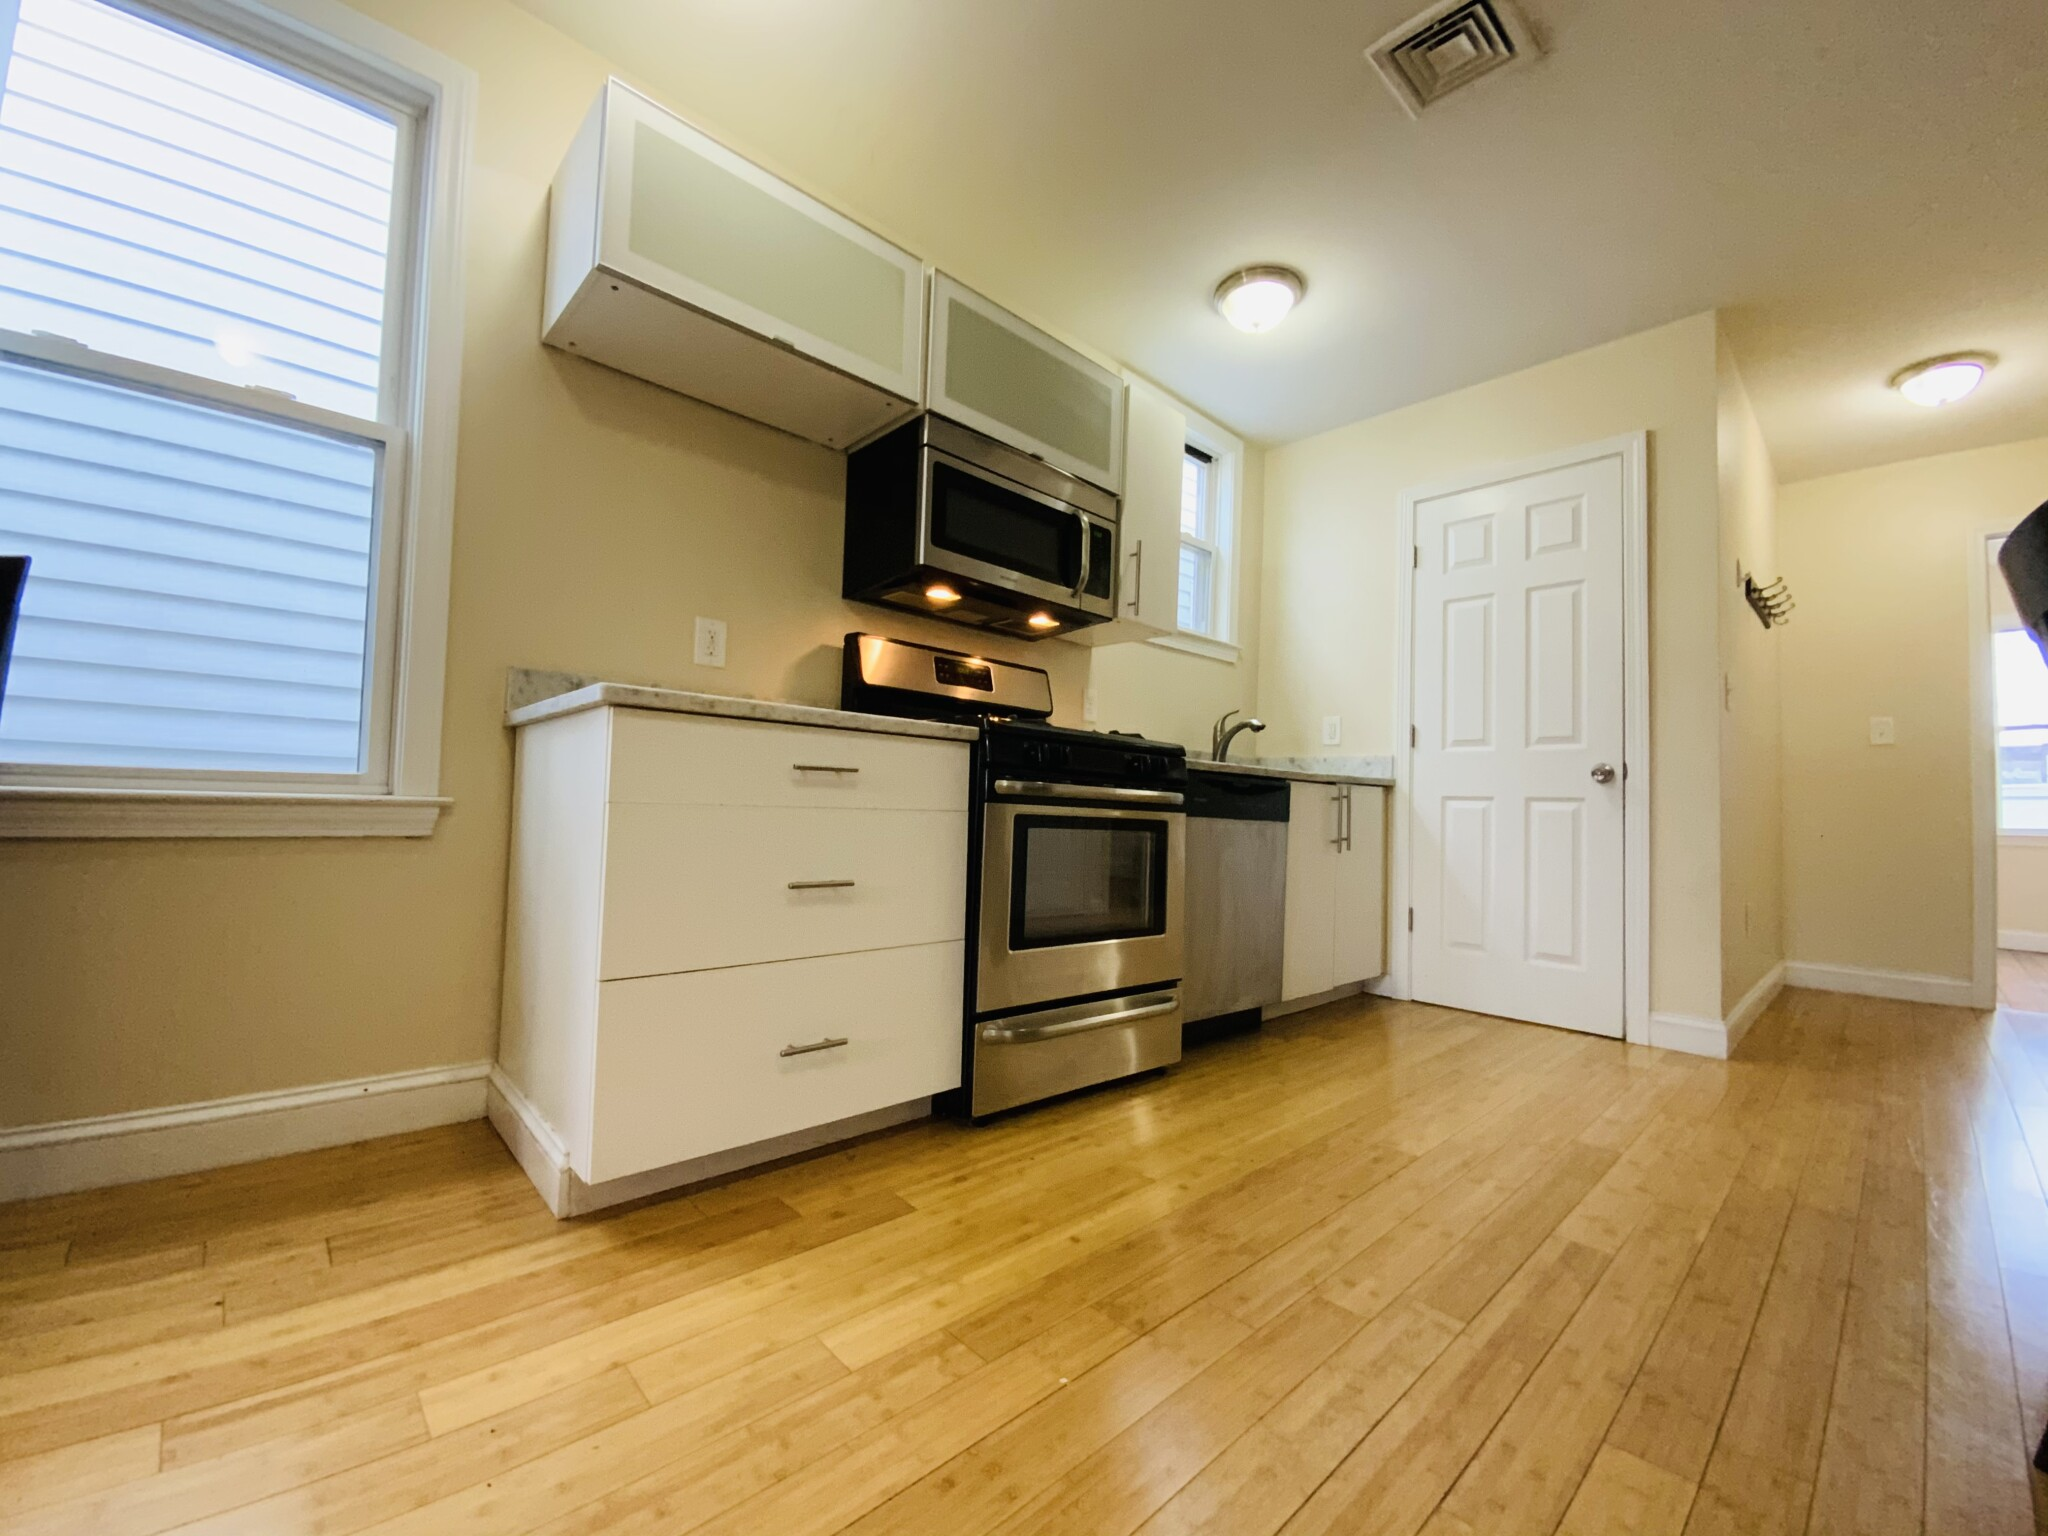 3 Beds, 1 Bath apartment in Boston, East Boston for $2,500